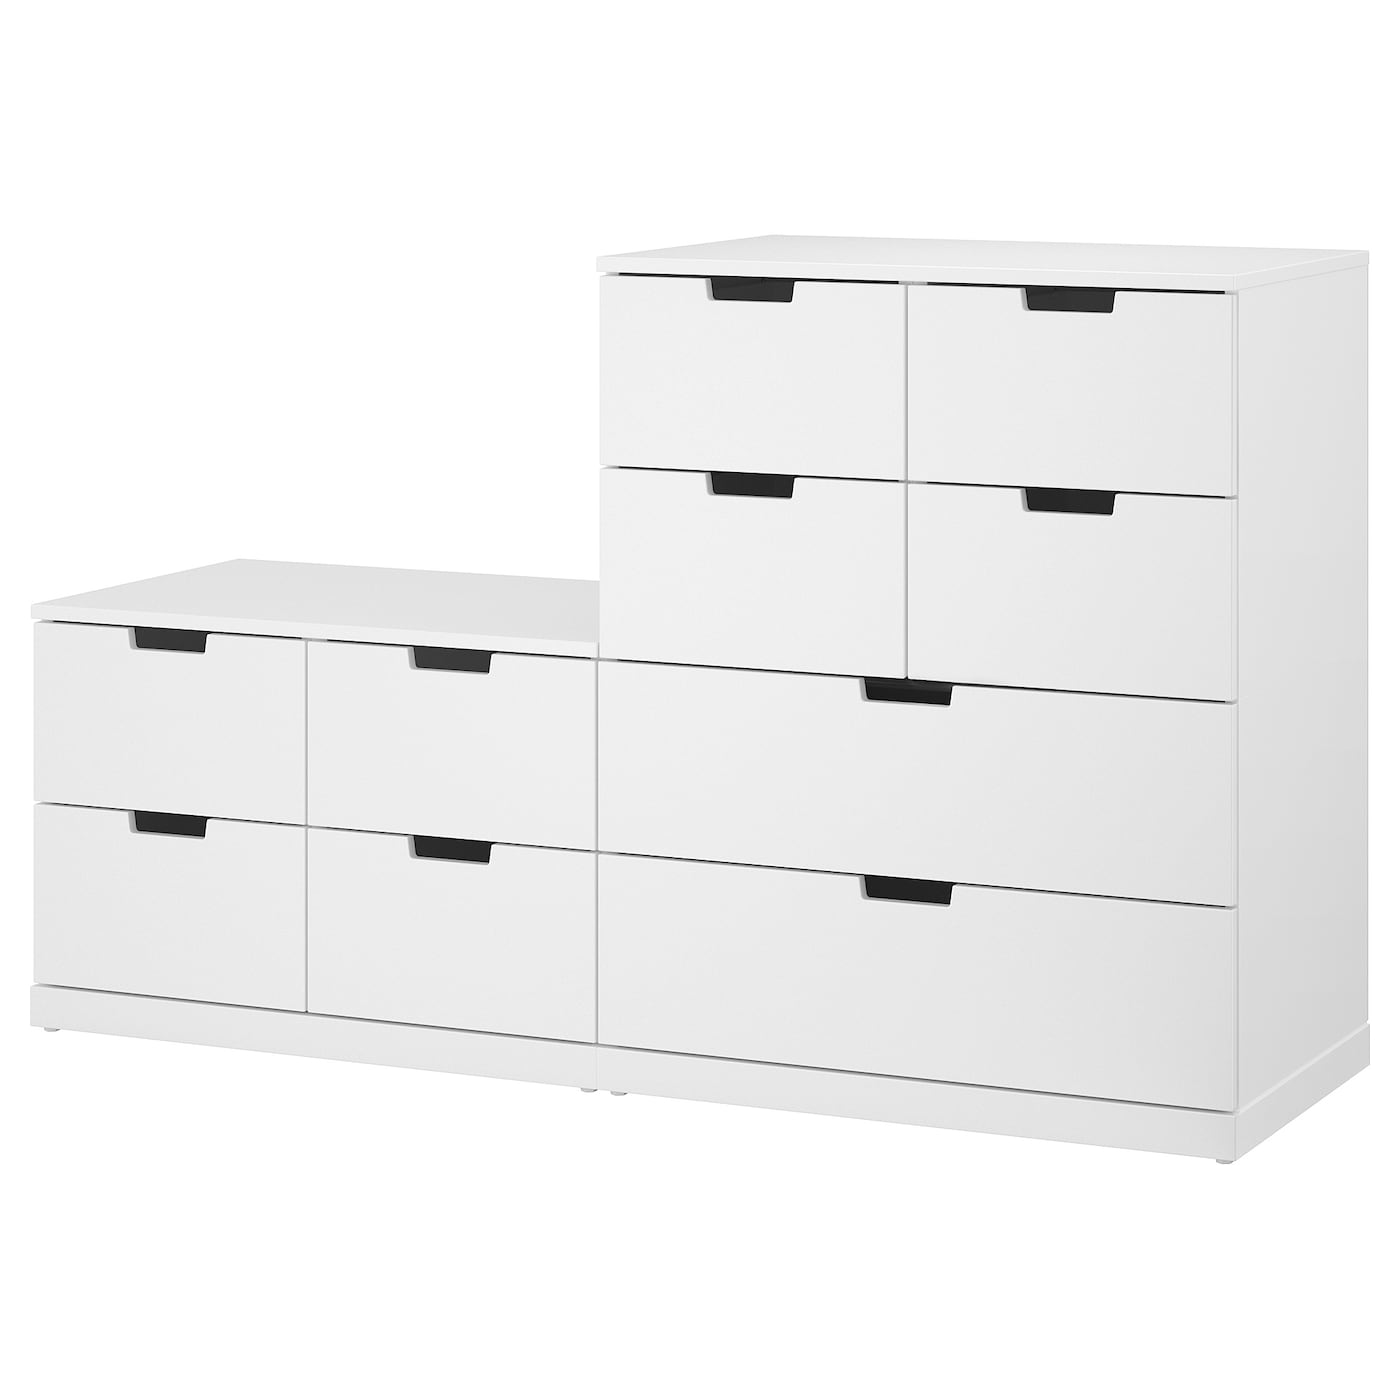 IKEA NORDLI chest of 10 drawers